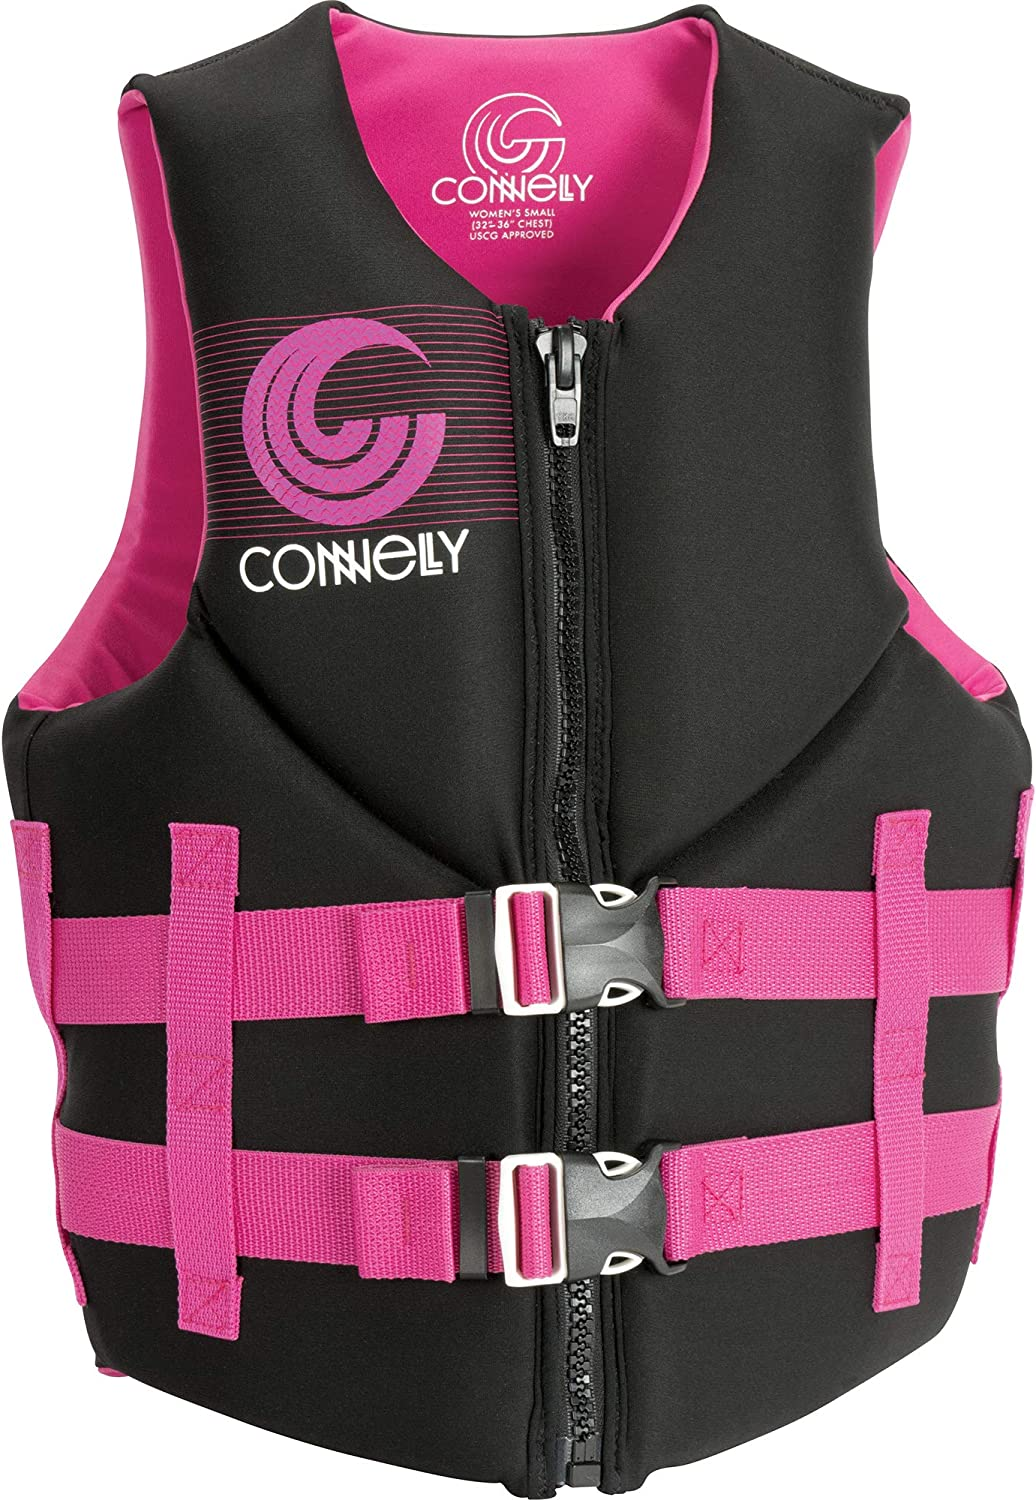 CWB Connelly Women's Promo Neo Vest-Coast Guard Approved, X-Large